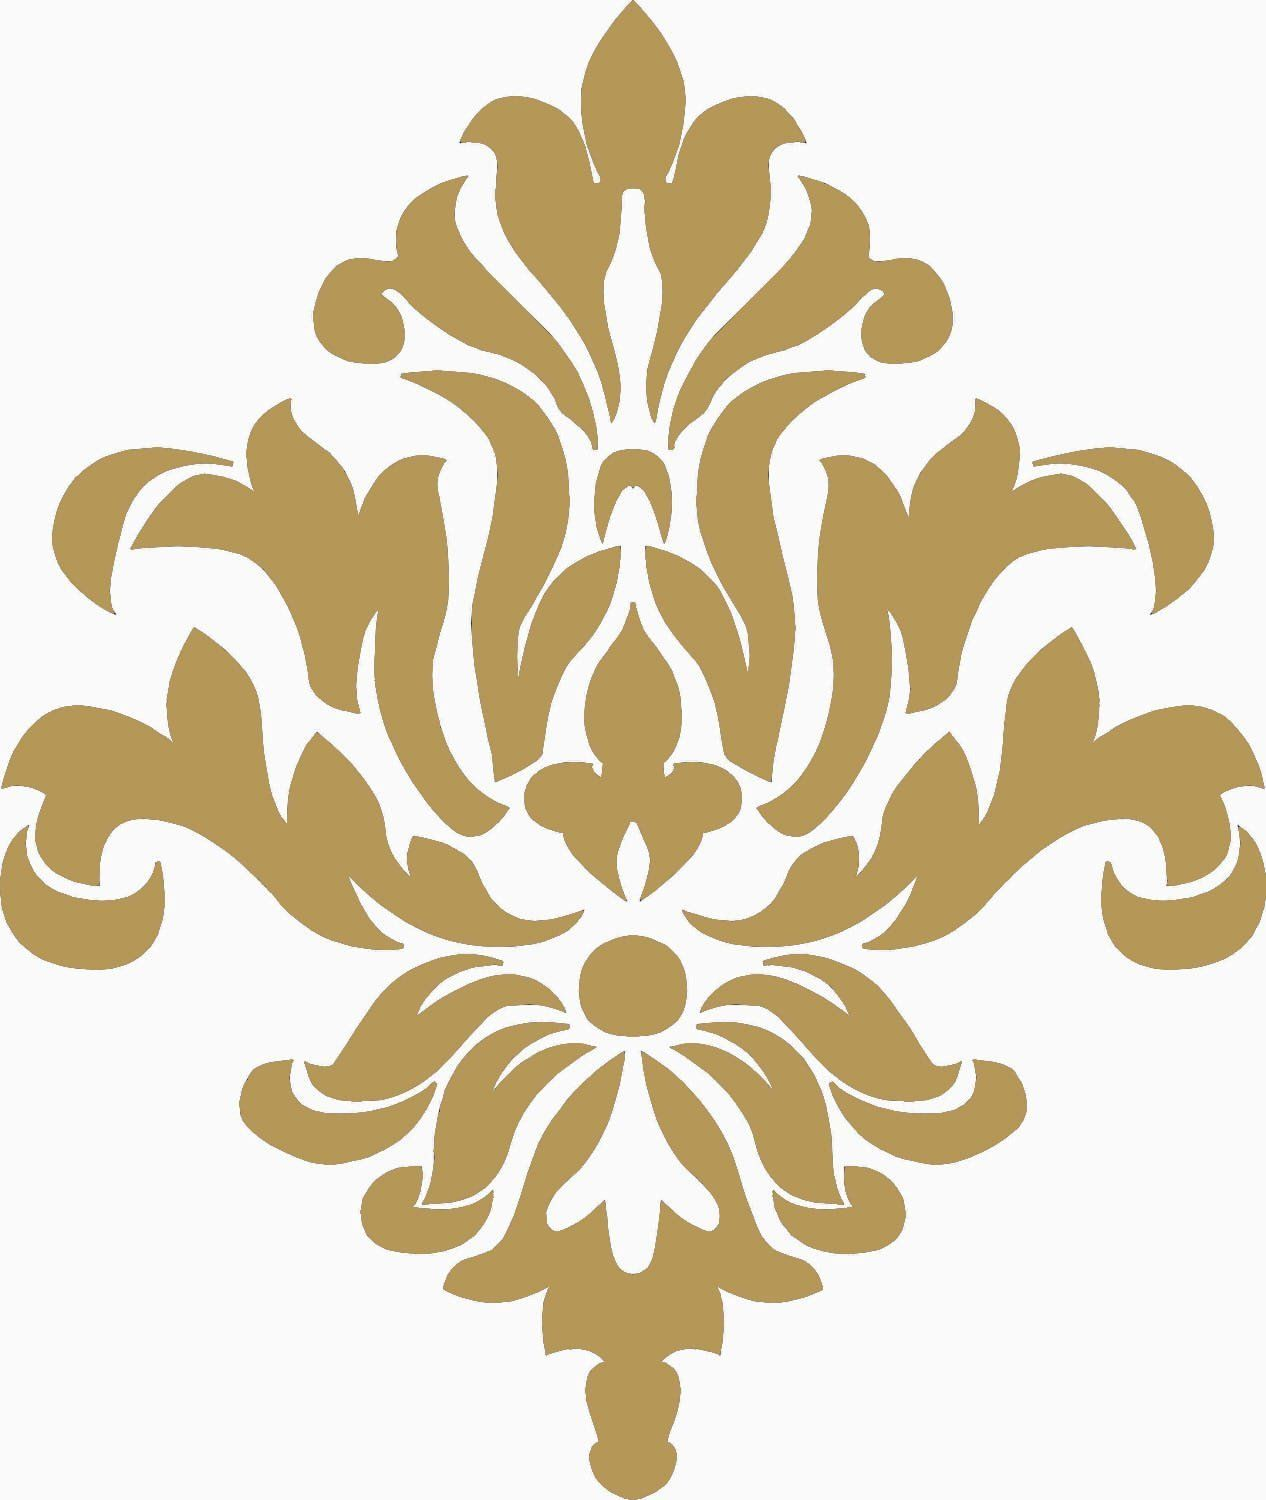 Amazon.com: Damask Pattern Wall Home Decor Decal Stickers (18, Gold ...